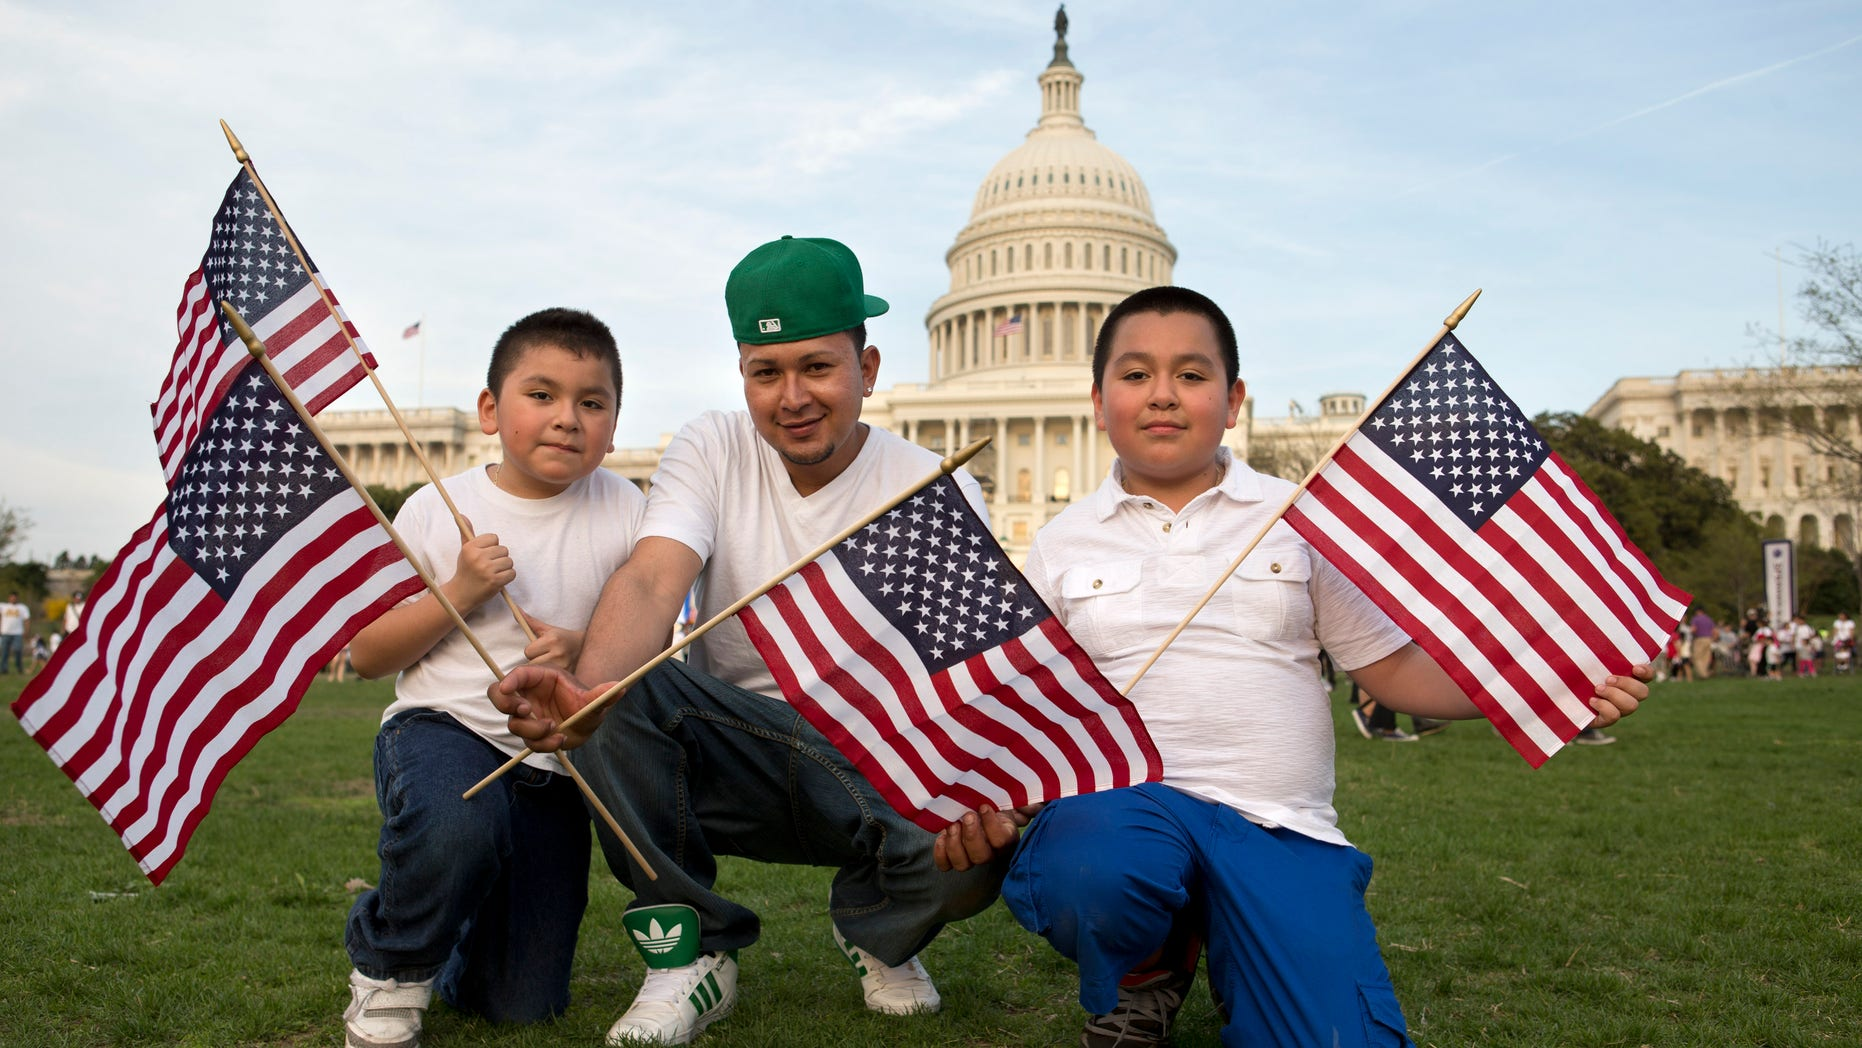 """Josue Benavides, 28, center, who is originally from El Salvador, poses for a portrait with his cousins Jonathan, 7, left, and Christopher Benavides, 11, of Alexandria, Va., after attending the """"Rally for Citizenship,"""" a rally in support of immigration reform, on Capitol Hill in Washington, on Wednesday, April 10, 2013. Bipartisan groups in the House and Senate are said to be completing immigration bills that include a pathway to citizenship for the nation's 11 million immigrants with illegal status. """"We need reform,"""" says Josue Benavides, """"so that the families can have a better life and avoid separations."""" (AP Photo/Jacquelyn Martin)"""